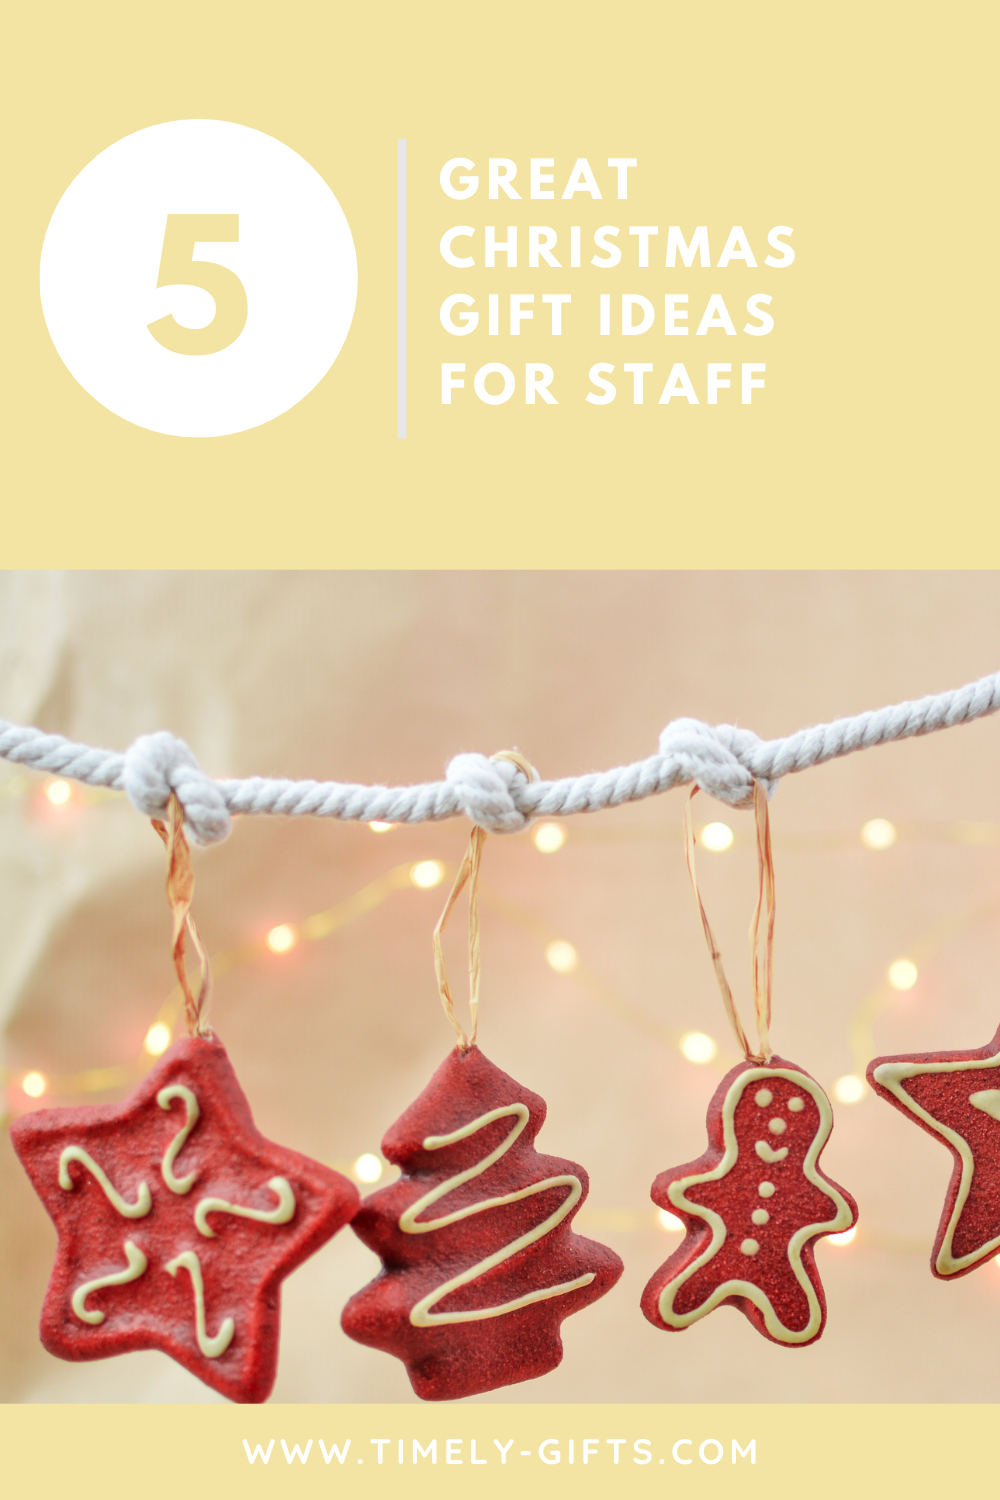 Check out these great Christmas gift ideas for staff! This article will have some great Christmas gift ideas that your staff is sure to appriciate! These gift ideas are super fun and great for all your co-workers or employees. #christmas #christmasgifts #staffgifts #christmasstaff #staffmembers #giftideas #holidaygifts #co-workergifts #empolyeegifts #giftsforthem #employees #greatgifts